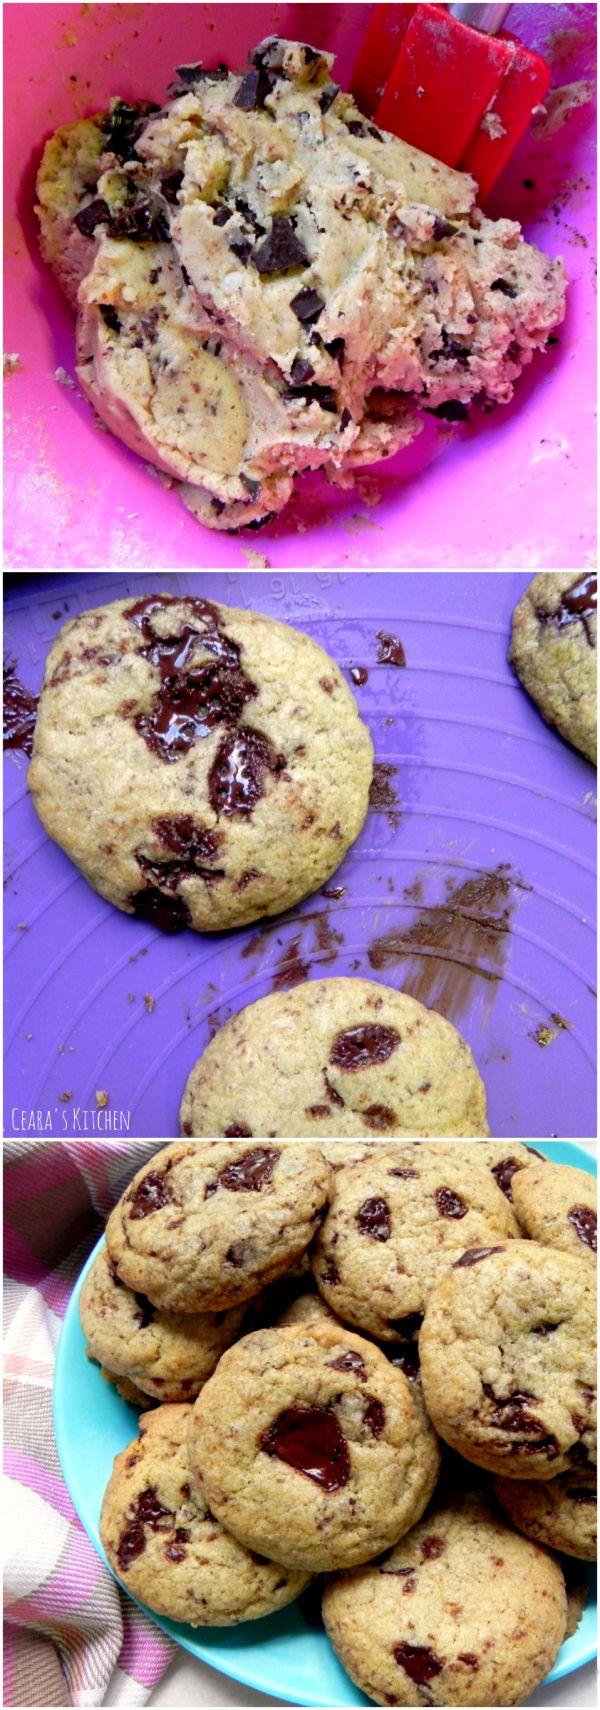 The BEST #VEGAN Chocolate Chunk Cookies! Perfectly soft, thick and gooey in the middle & chewy around the edges! It took me almost a year to perfect this recipe! - Ceara's Kitchen #cookiemonster